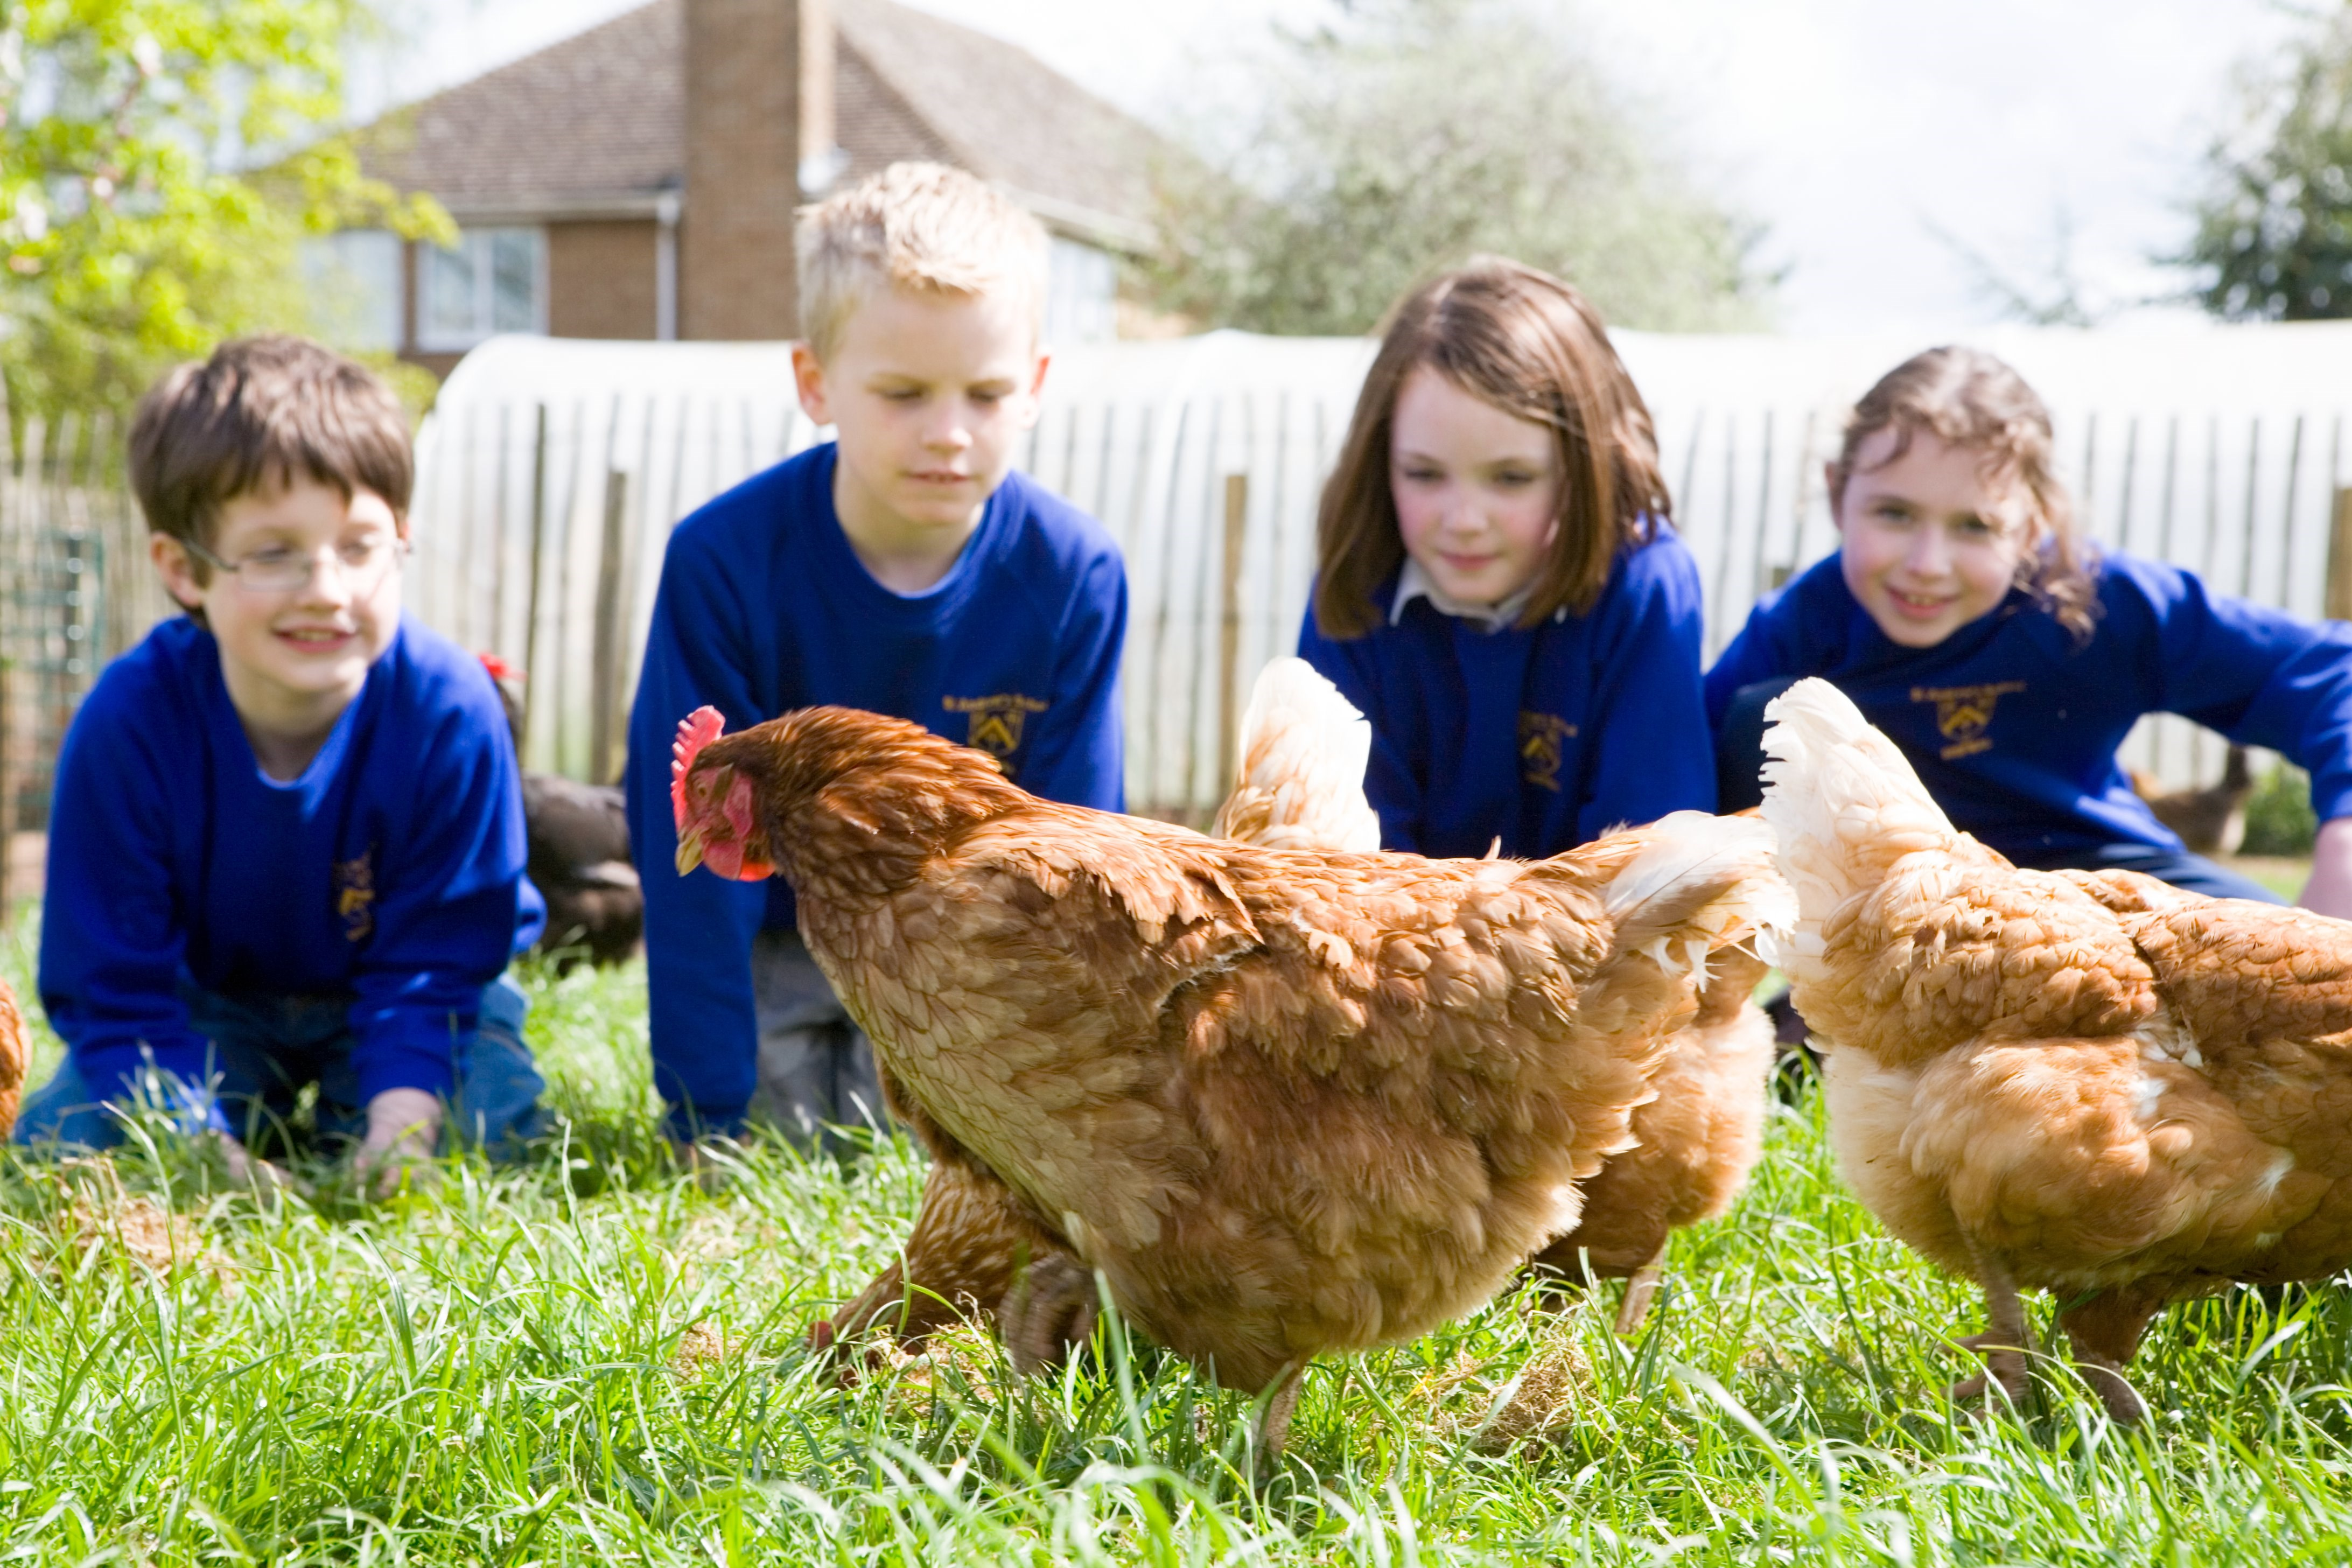 School children with chickens on farm